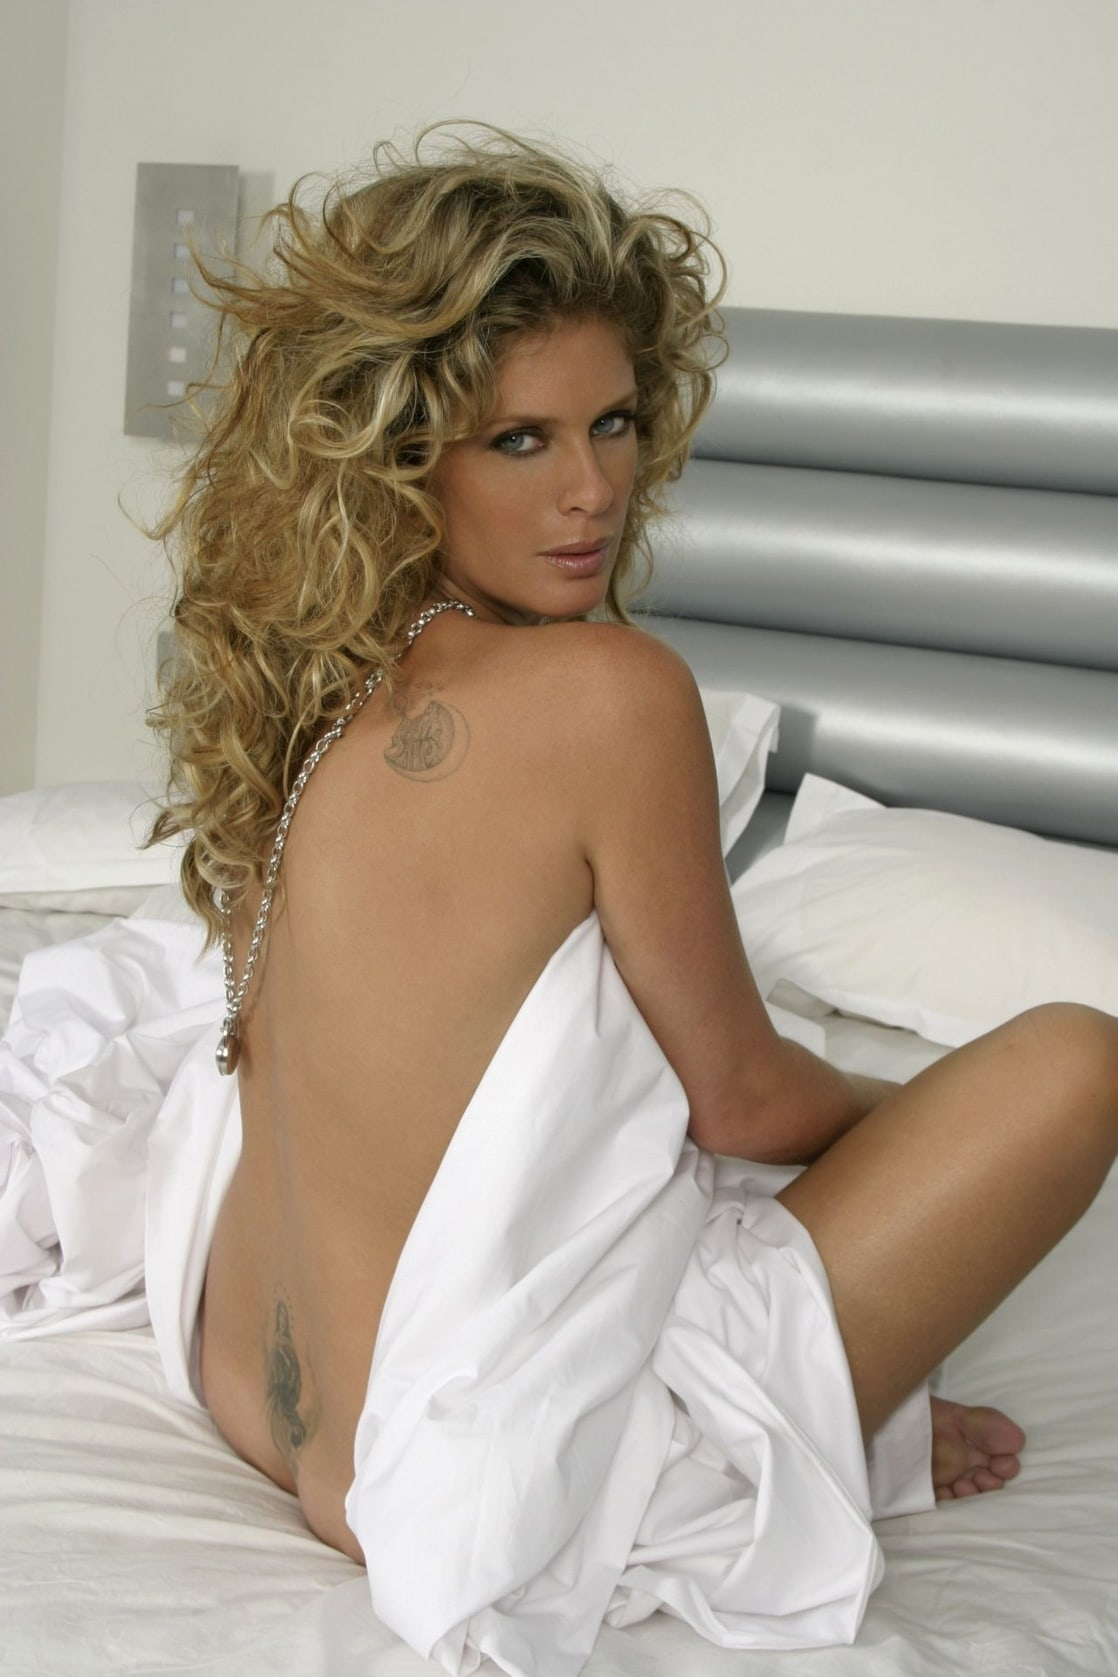 Rachel hunter hot naked pics 7